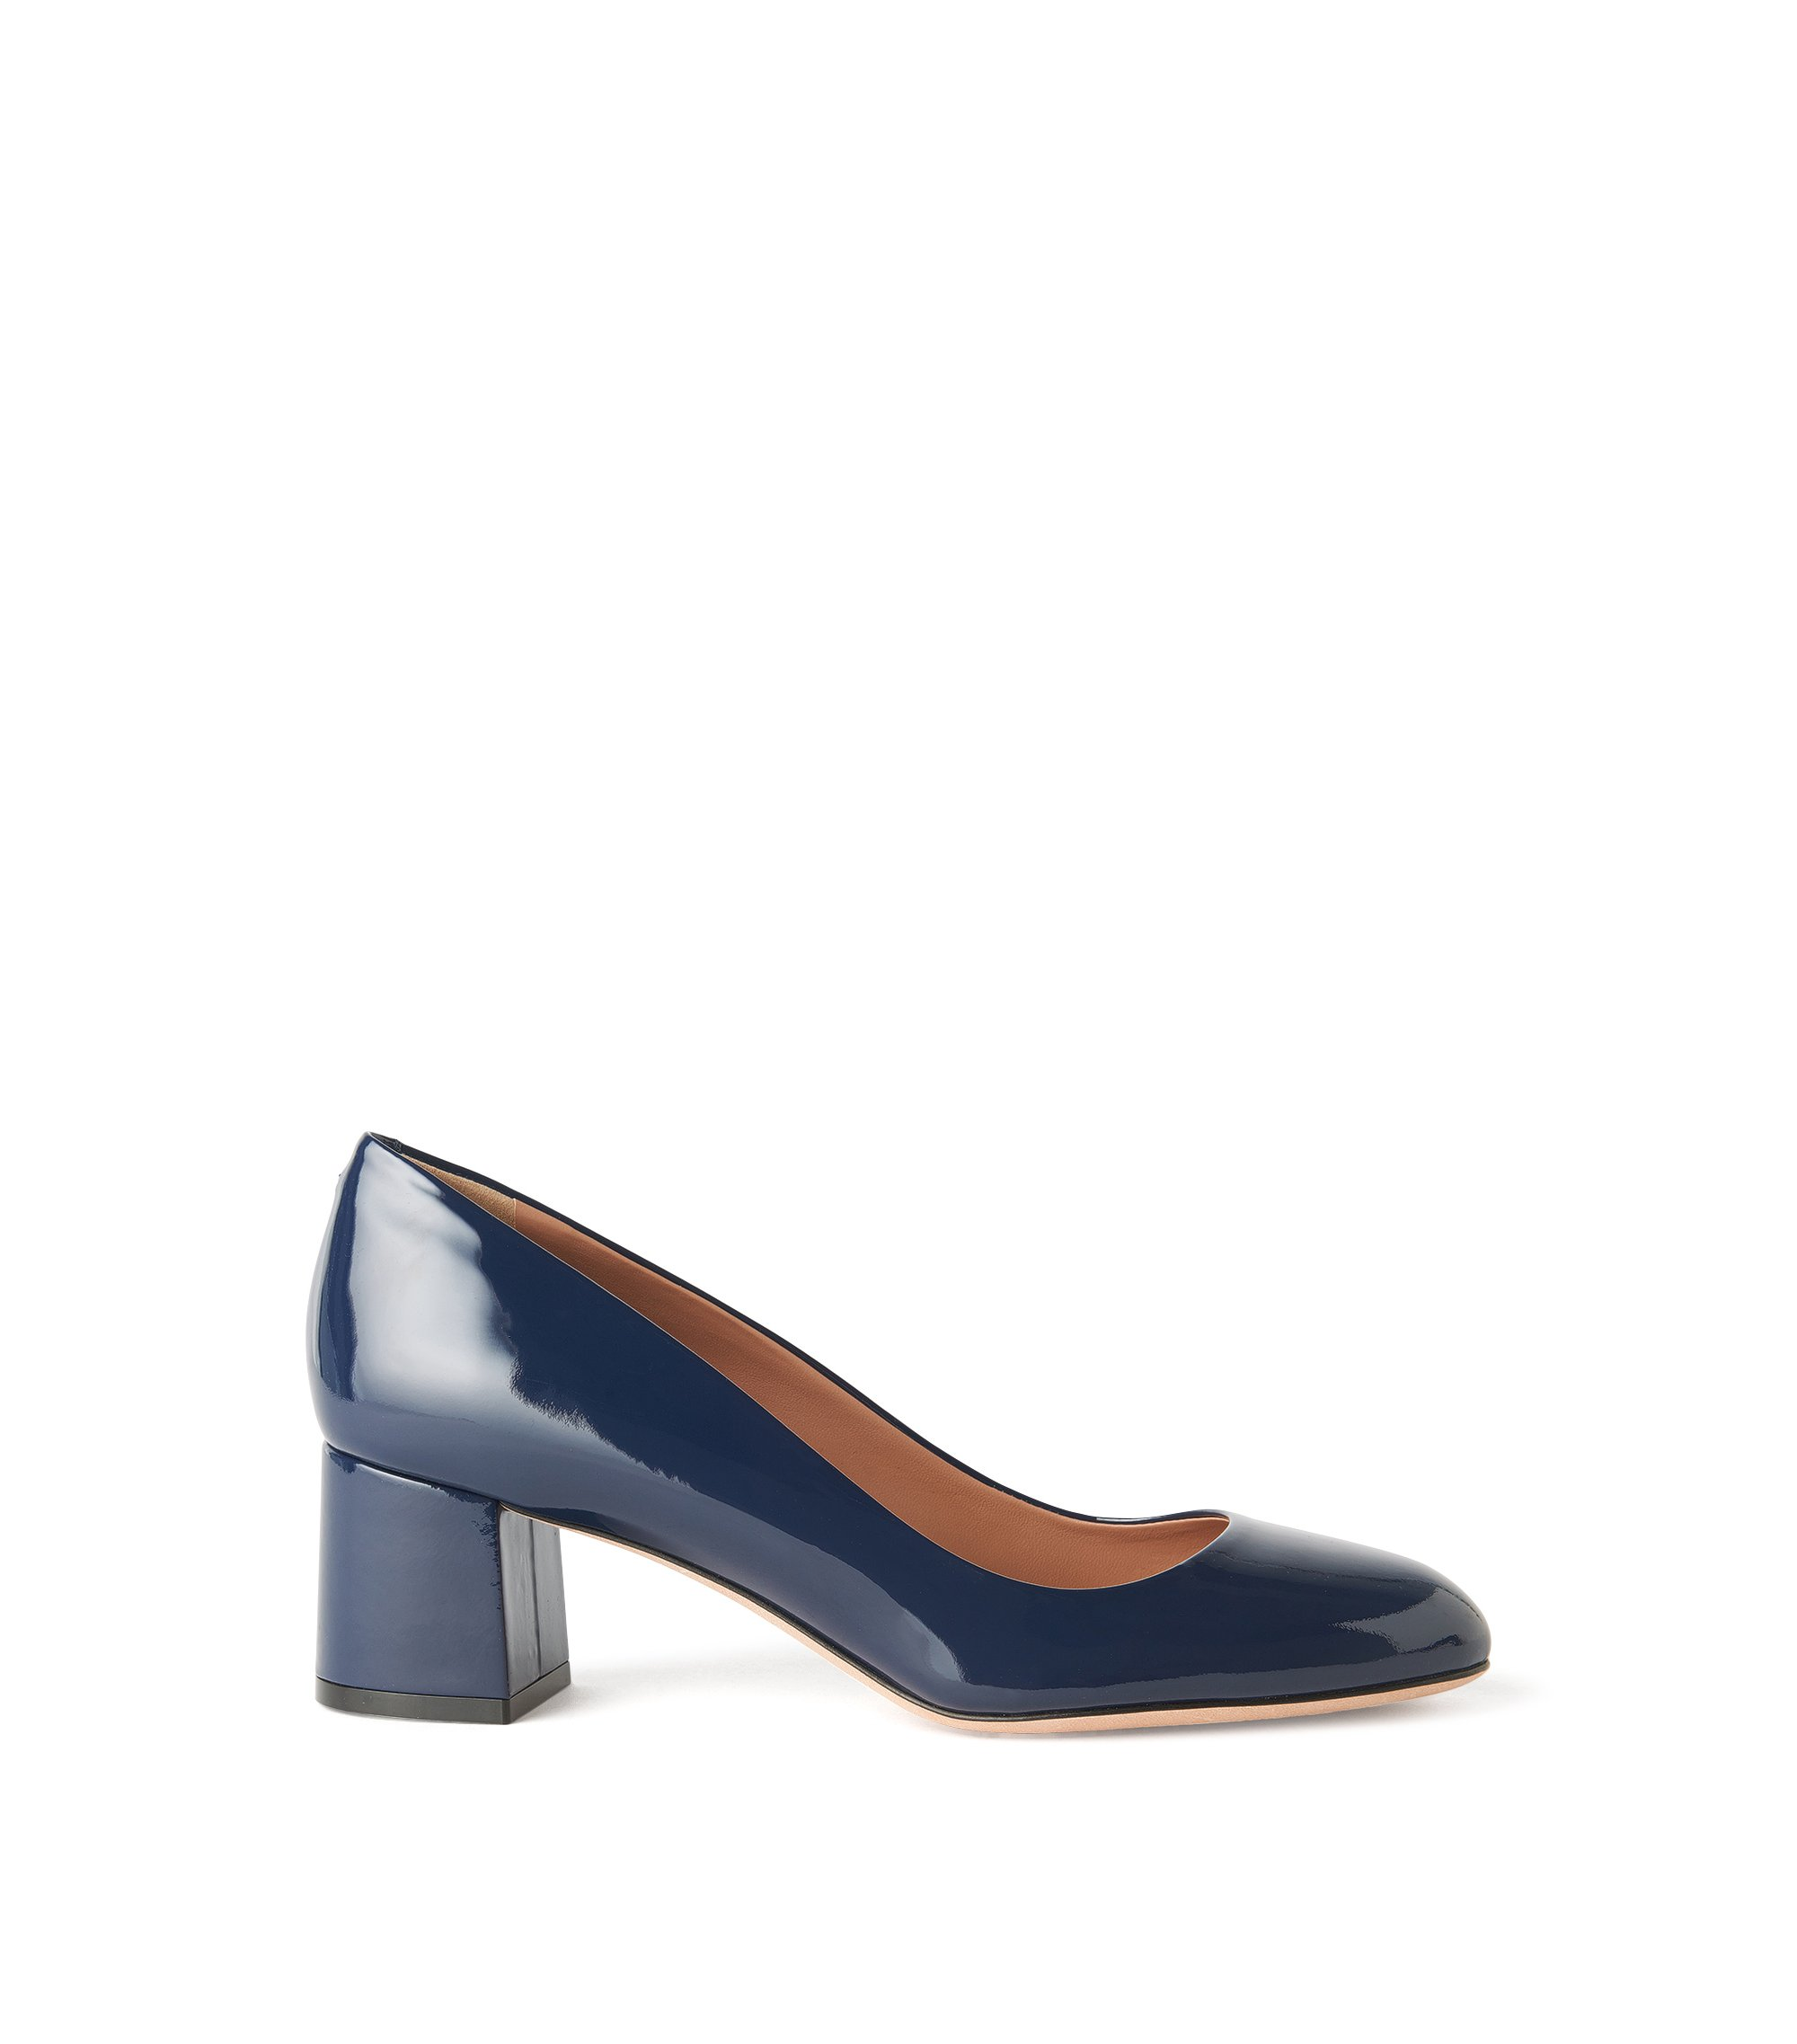 Patent Leather Pump | Taylor Pump, Blue